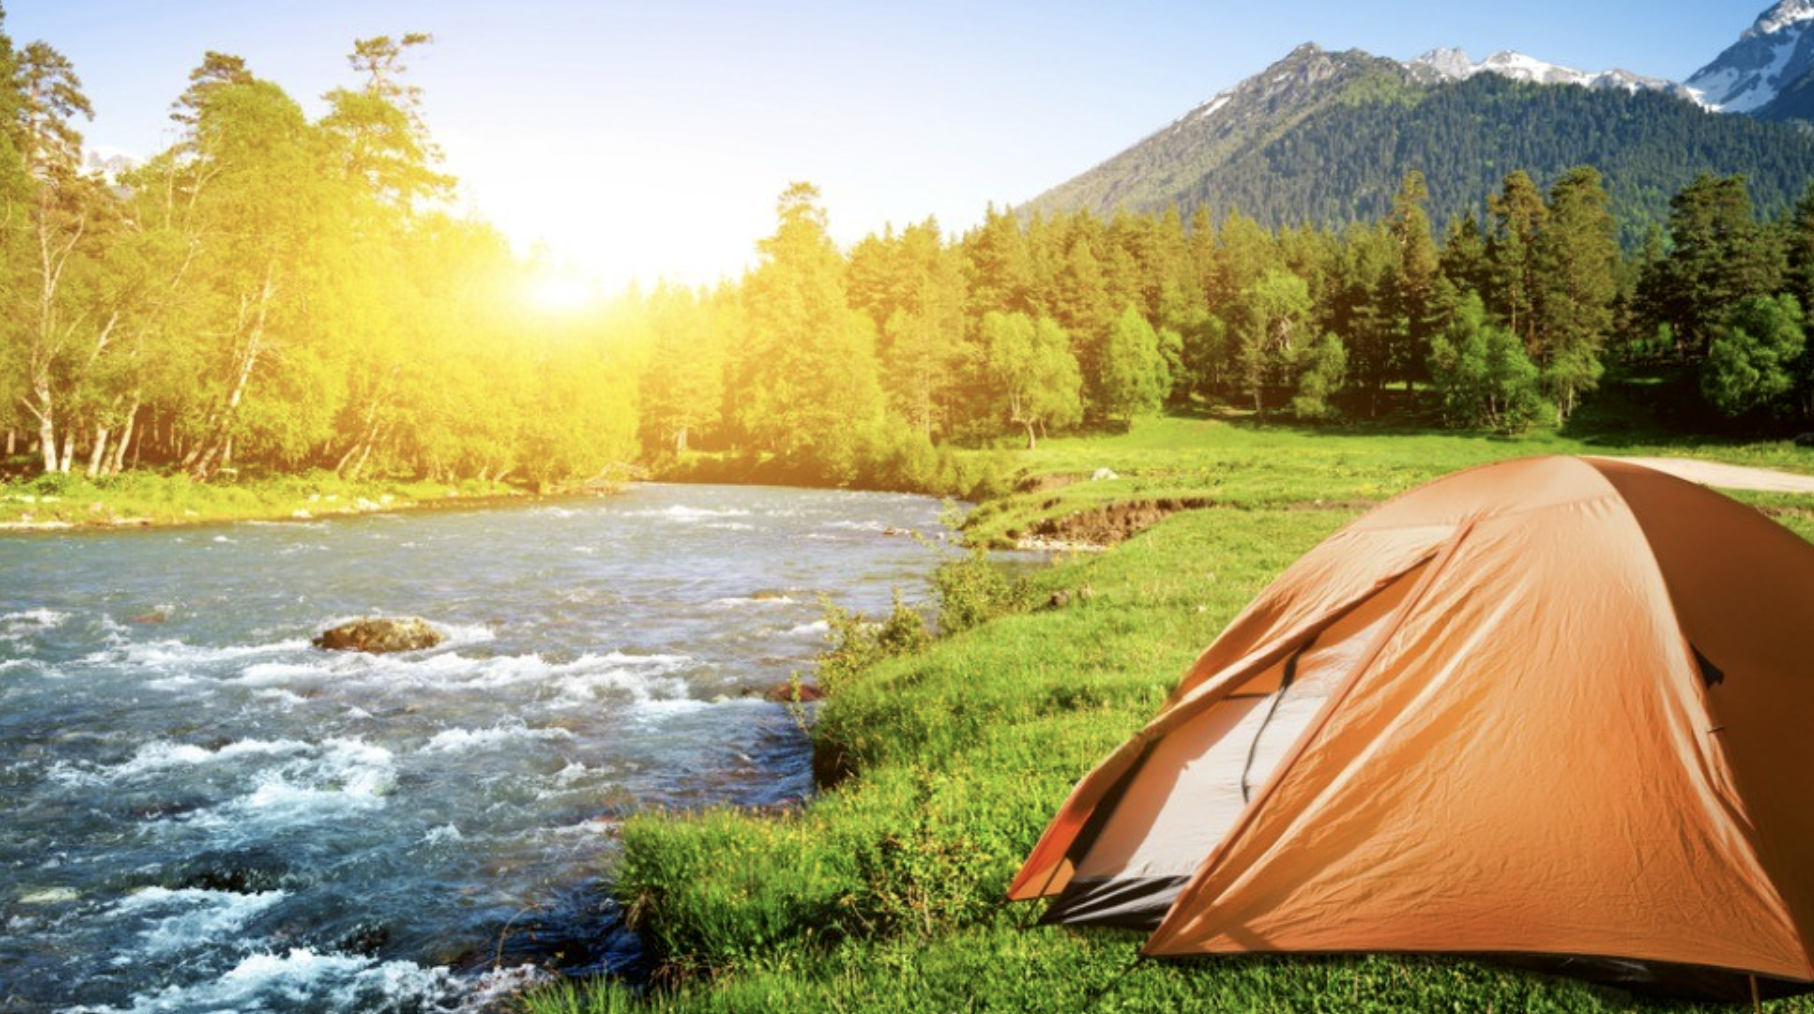 Camping - You could be here.